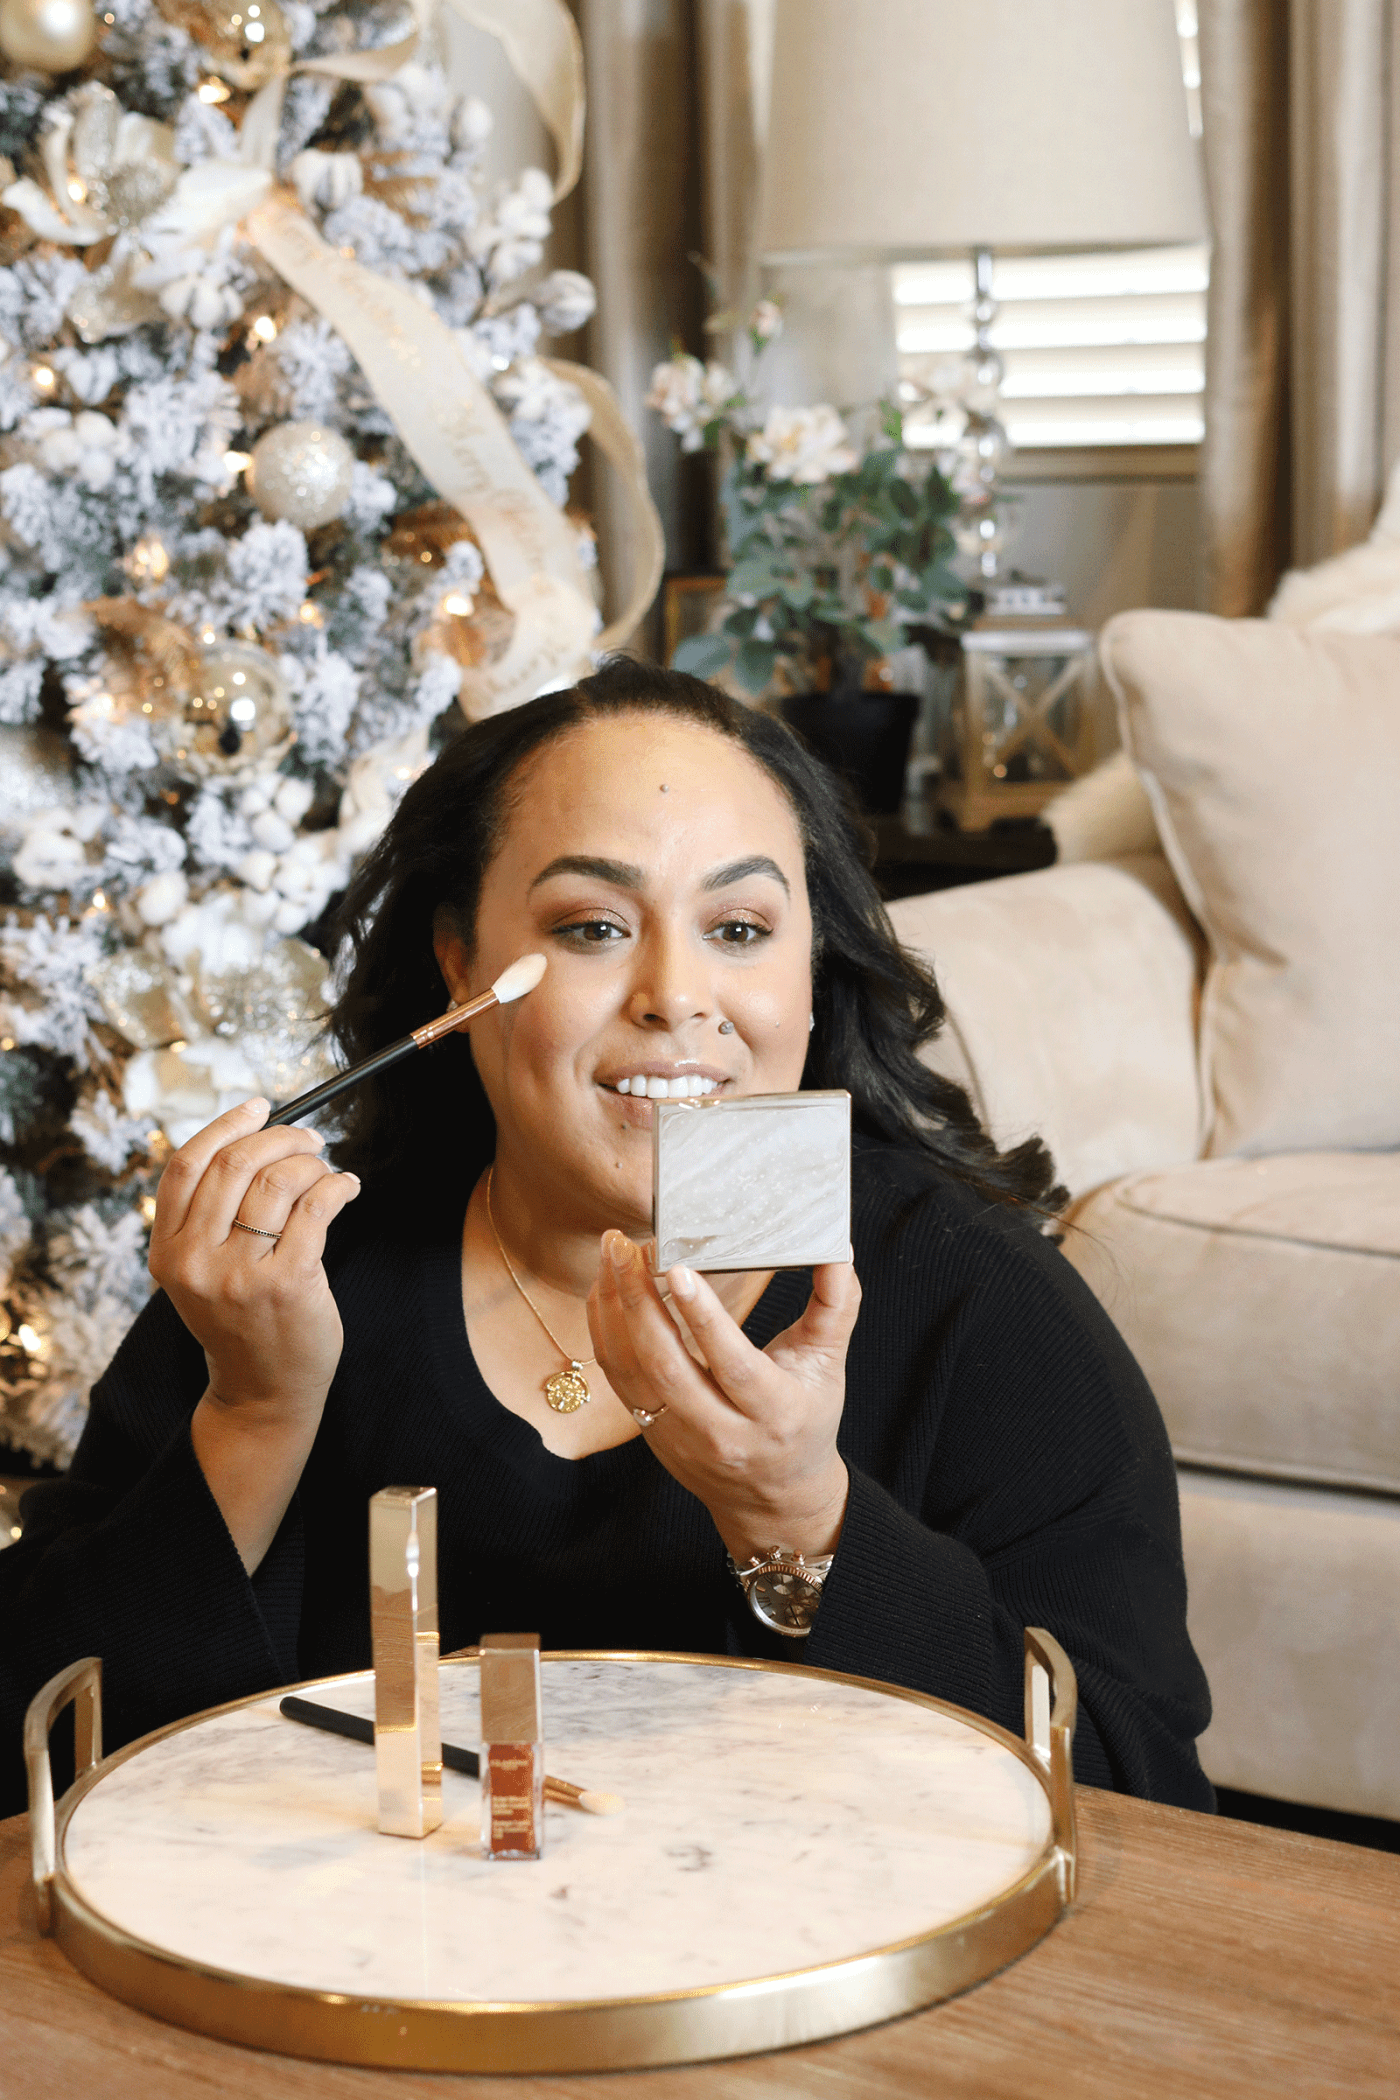 Looking for an easy holiday beauty look? Los Angeles Blogger Makeup Life and Love is sharing her easy holiday beauty look in 3 easy steps thanks to Clarins Shimmer and Shine collection! See them here!